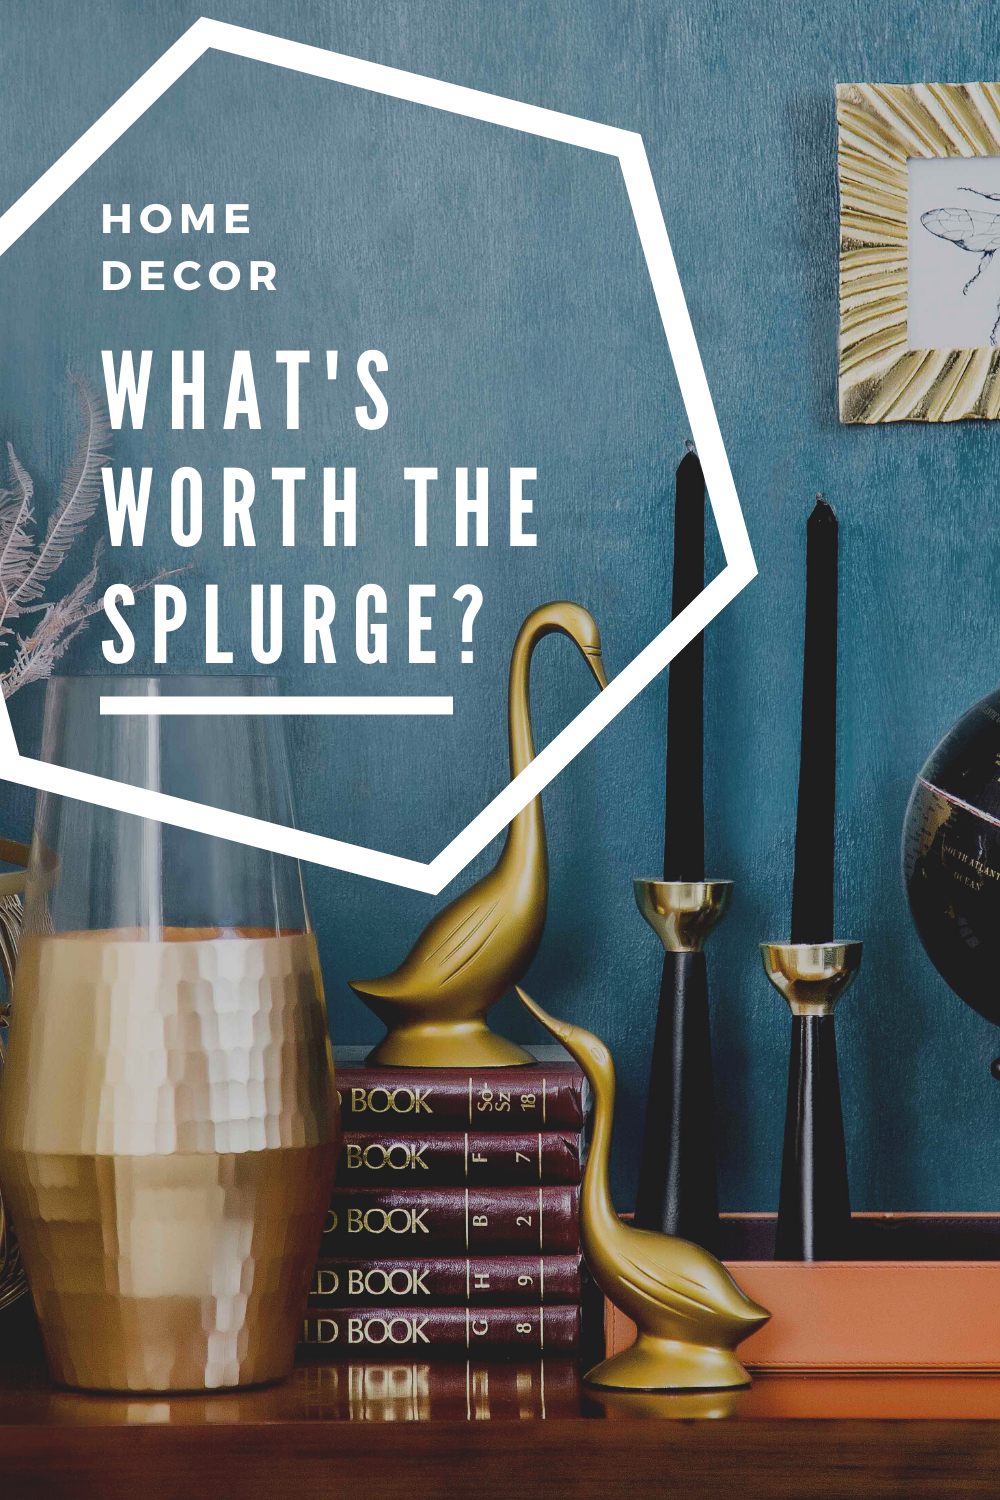 You don't have to spend a ton of money on home decor. That being said, there are some decor items that are worth the splurge. Here are a few.  #homedecor #homeaccessories #homeaccents #worththesplurge #interiorstyling #expensivehomedecor #homedecorating #decoratingtips